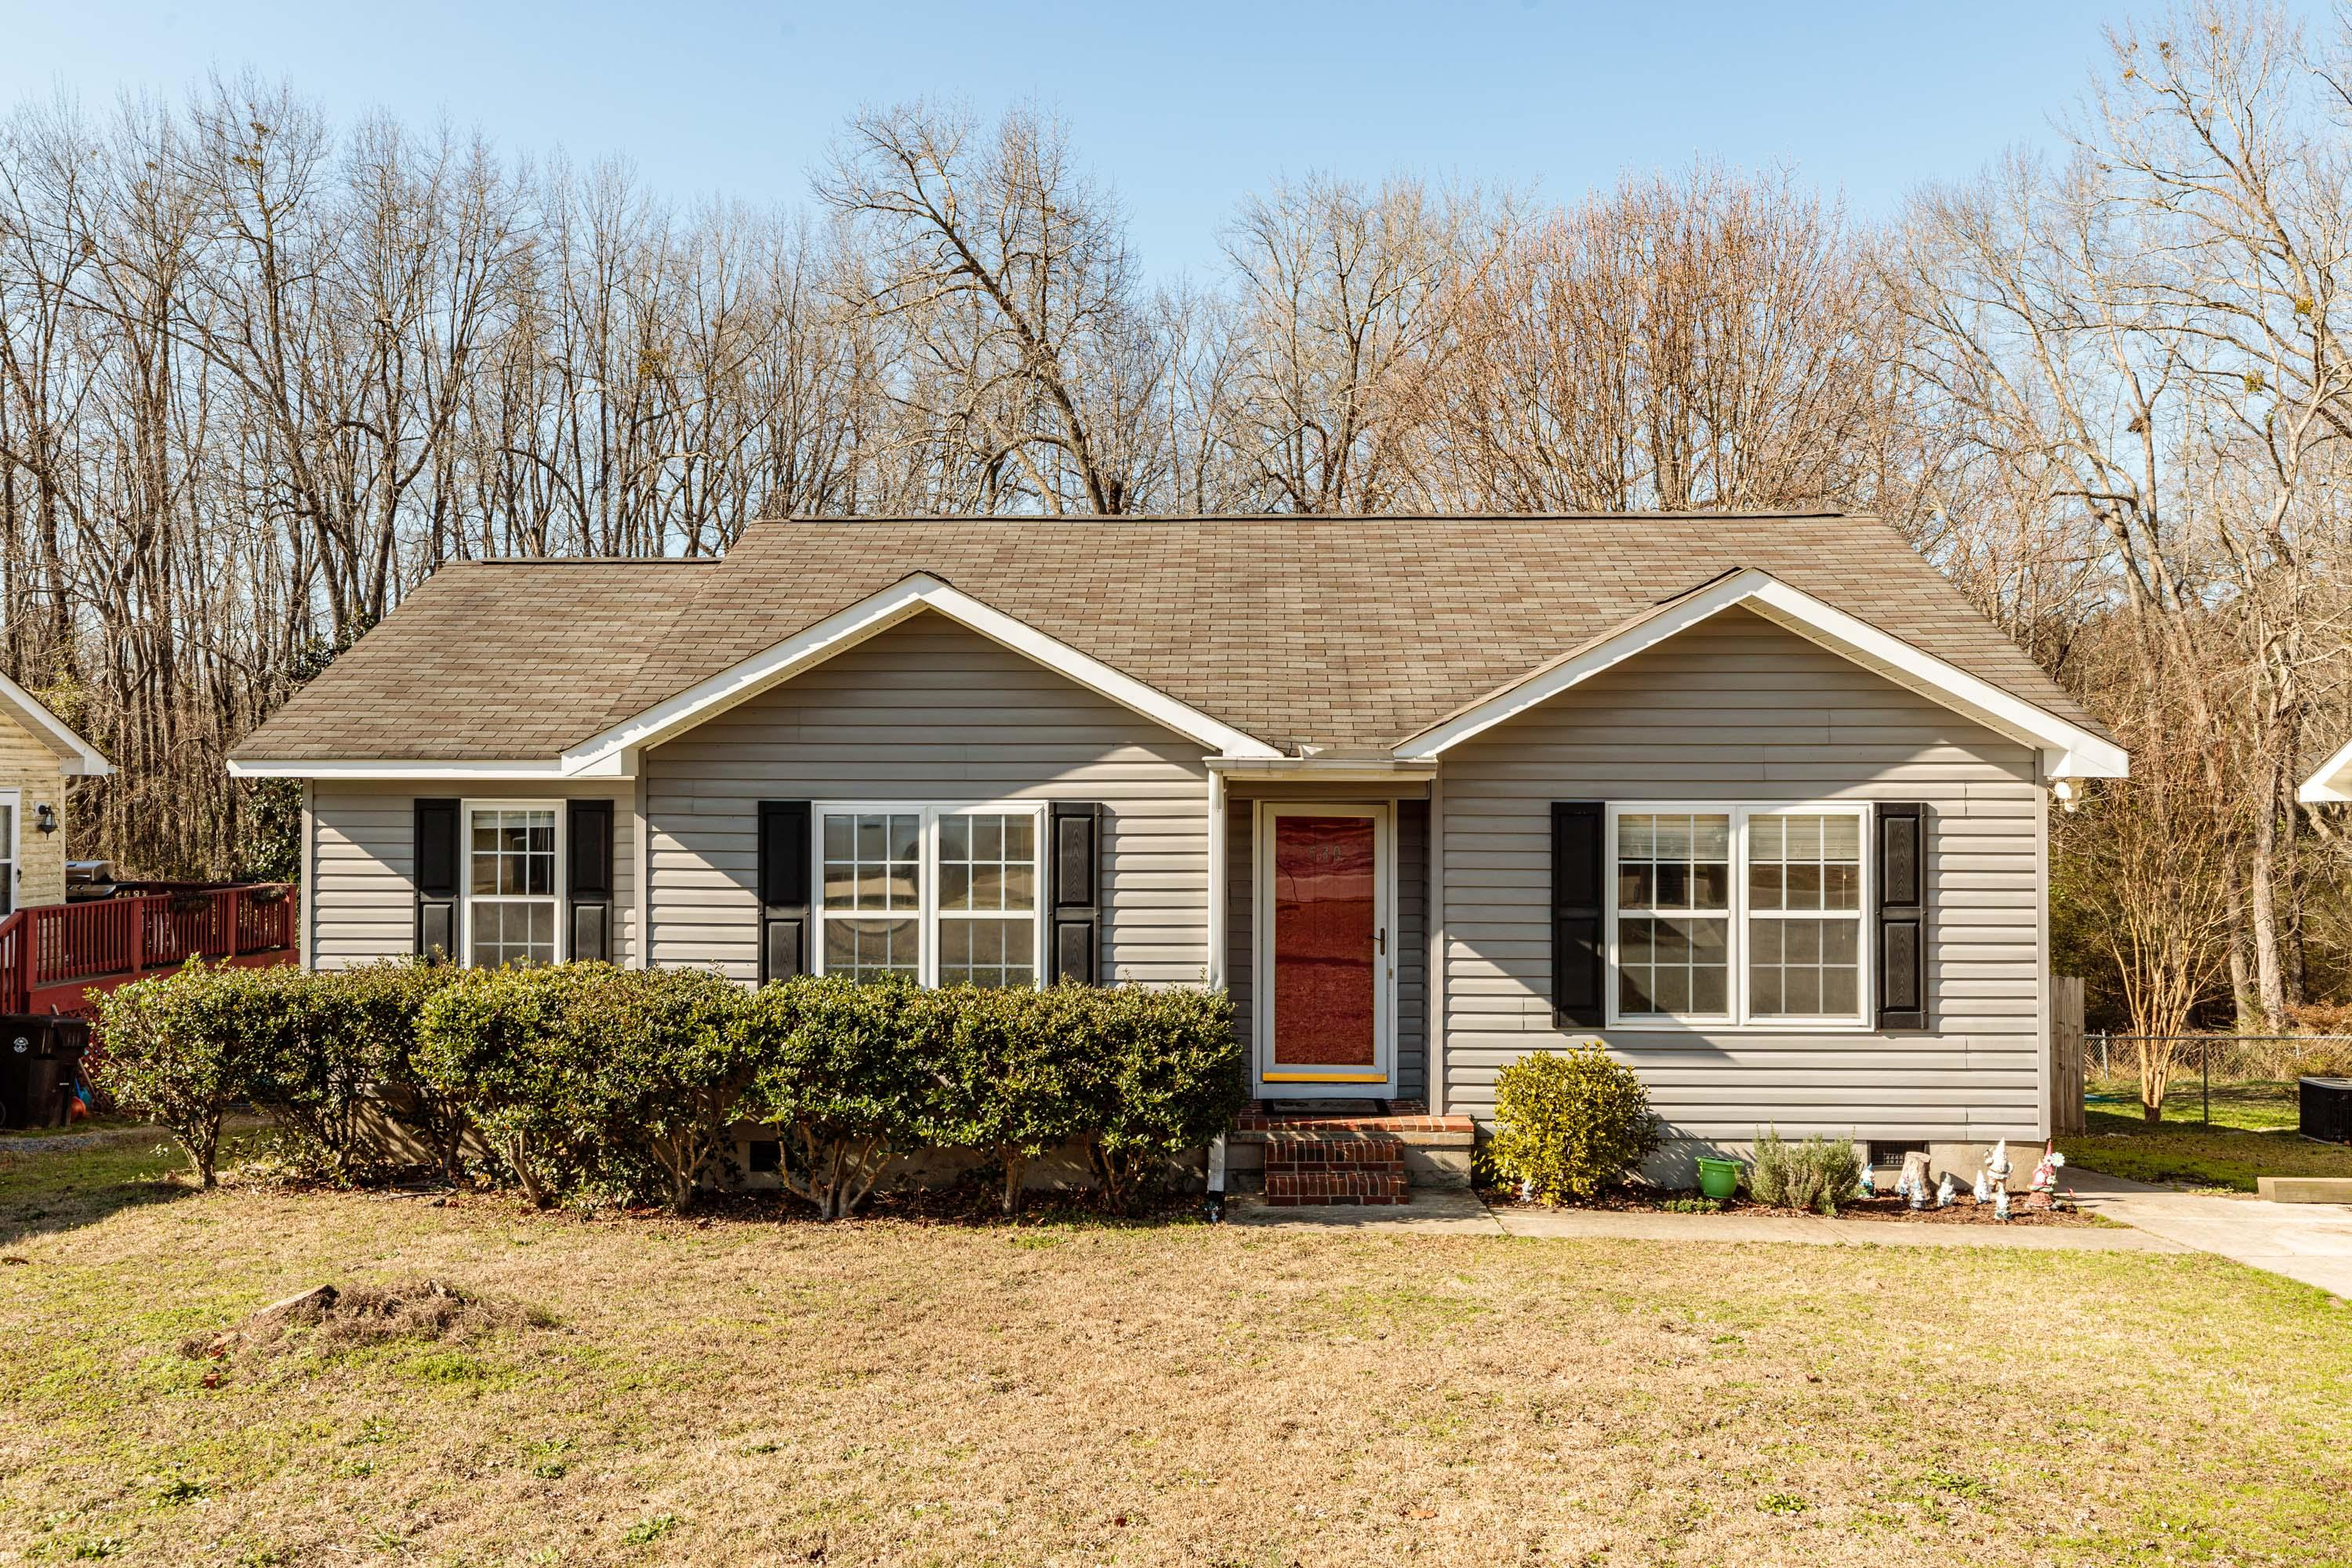 530 W Chapin Road, Aberdeen in Moore County, NC 28315 Home for Sale